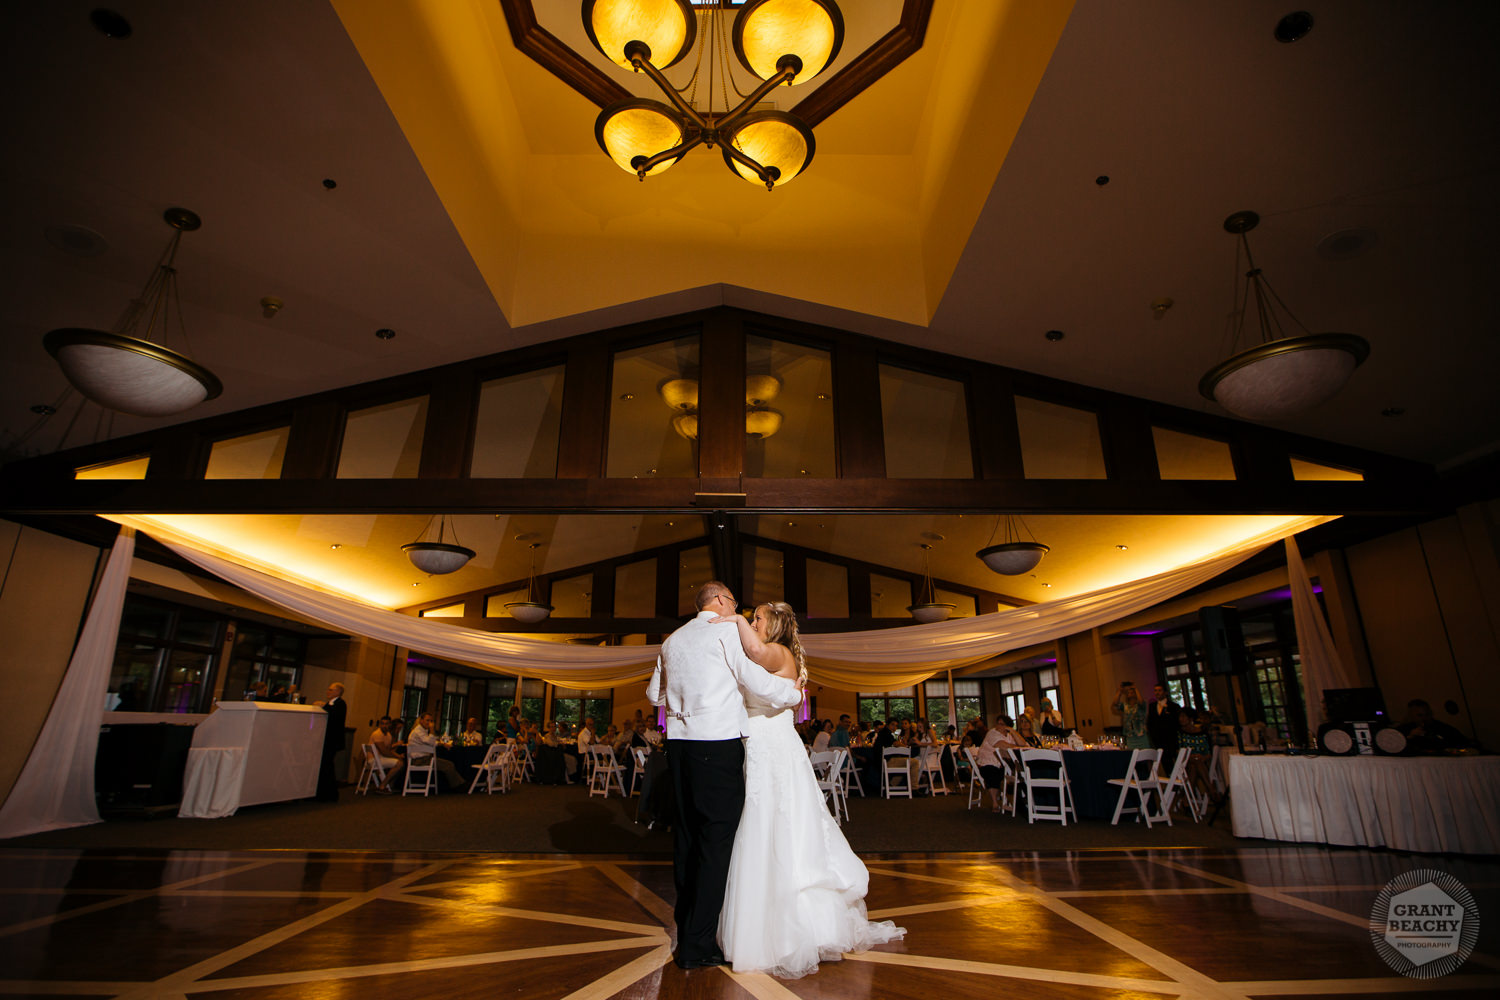 Grant Beachy wedding photography southbend goshen chicago-45.jpg